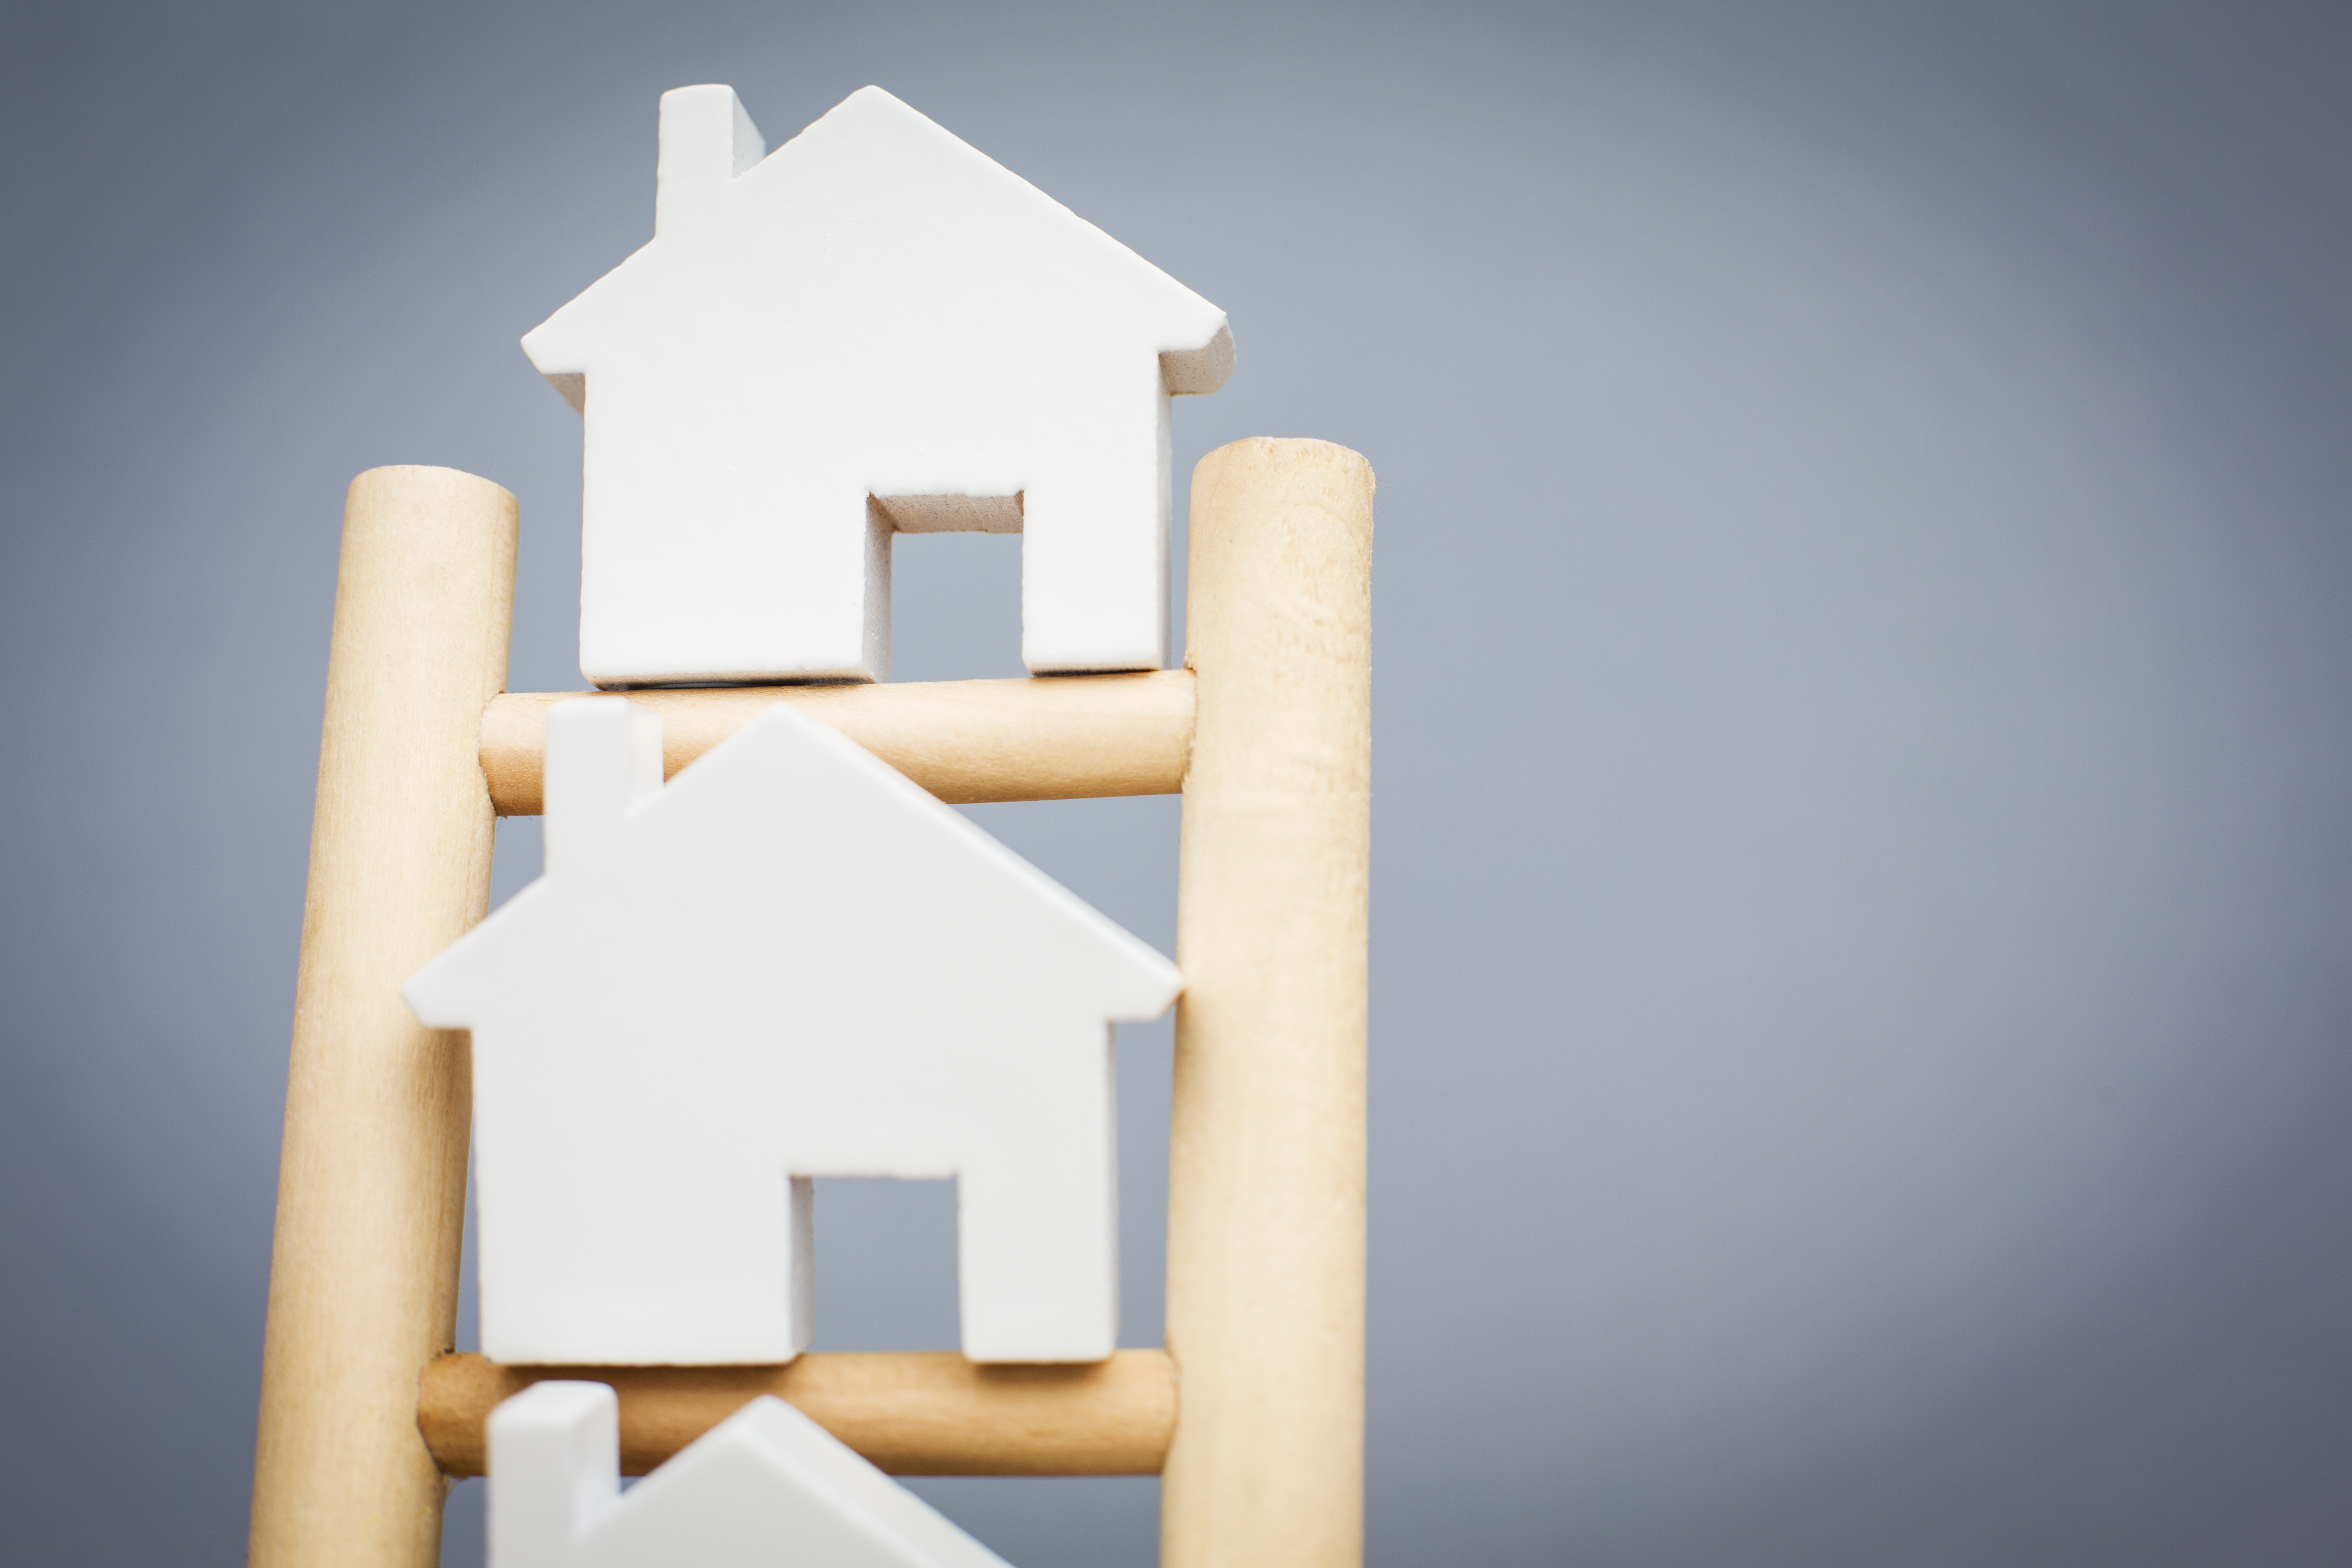 Mortgage lending soars to a 19-month high